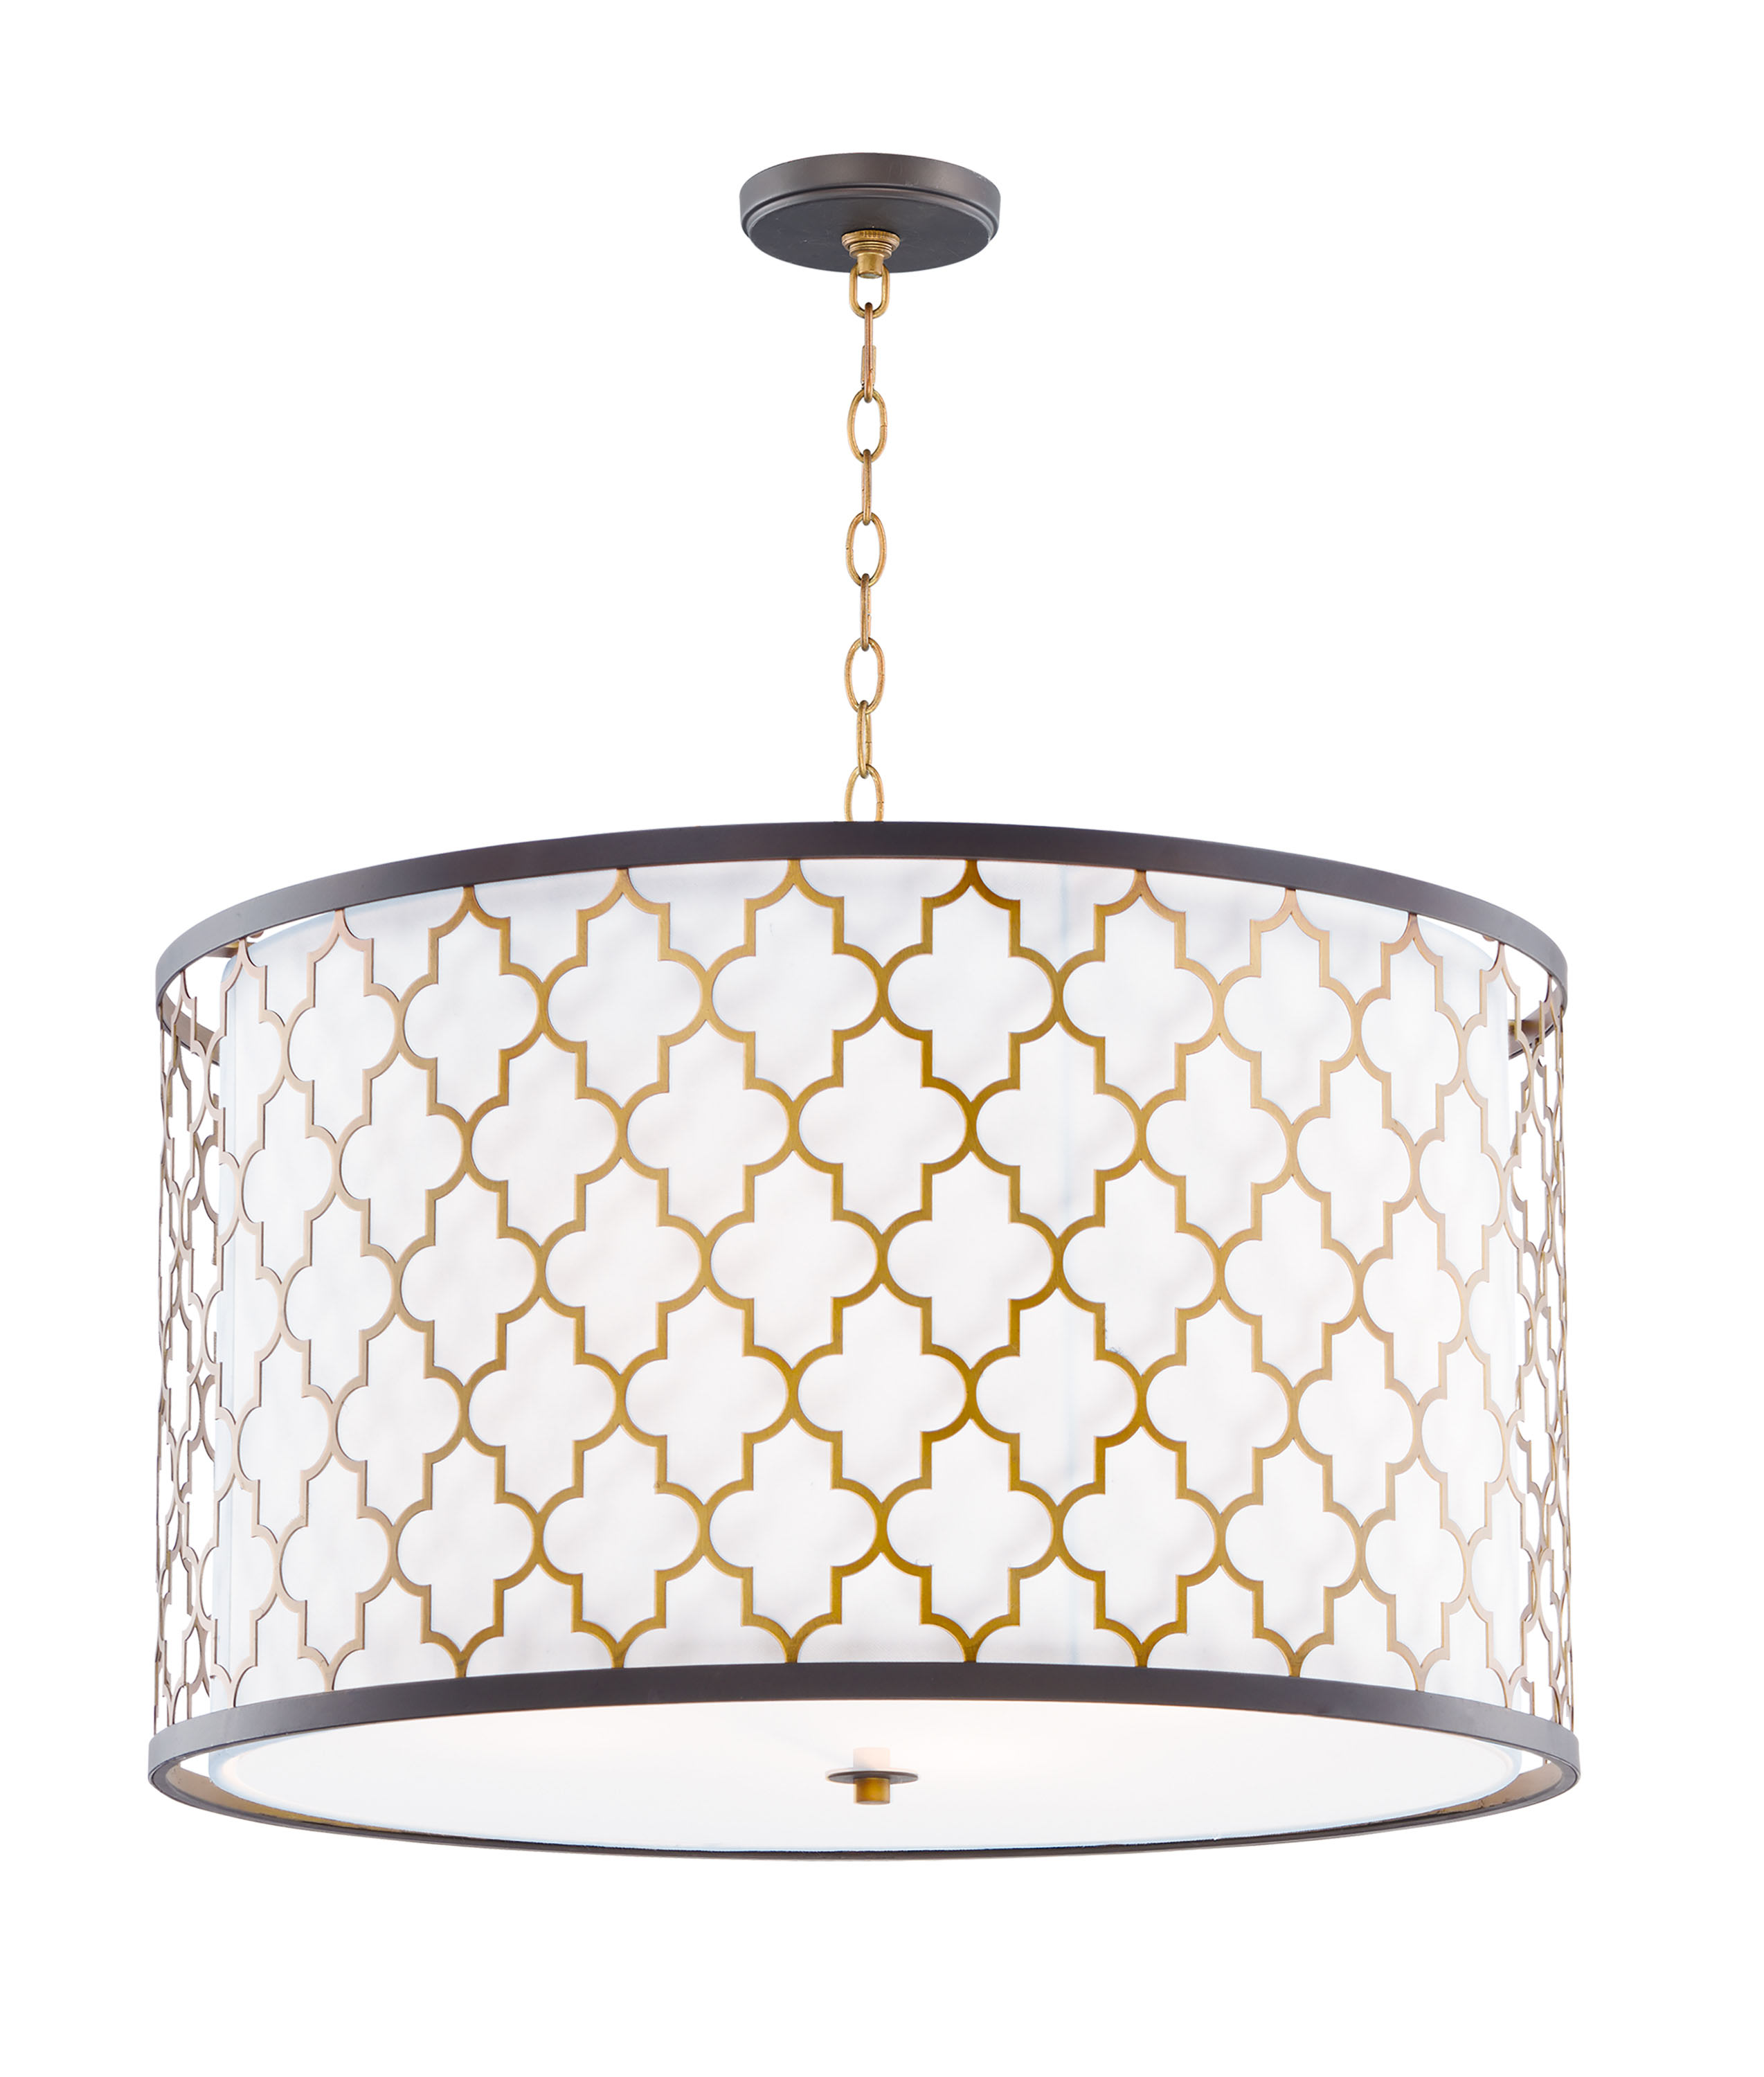 Image of: Maxim 20295wloiab Oil Rubbed Bronze Antique Brass Crest 4 Light 24 Wide Drum Chandelier With Fabric Drum Shade Lightingdirect Com